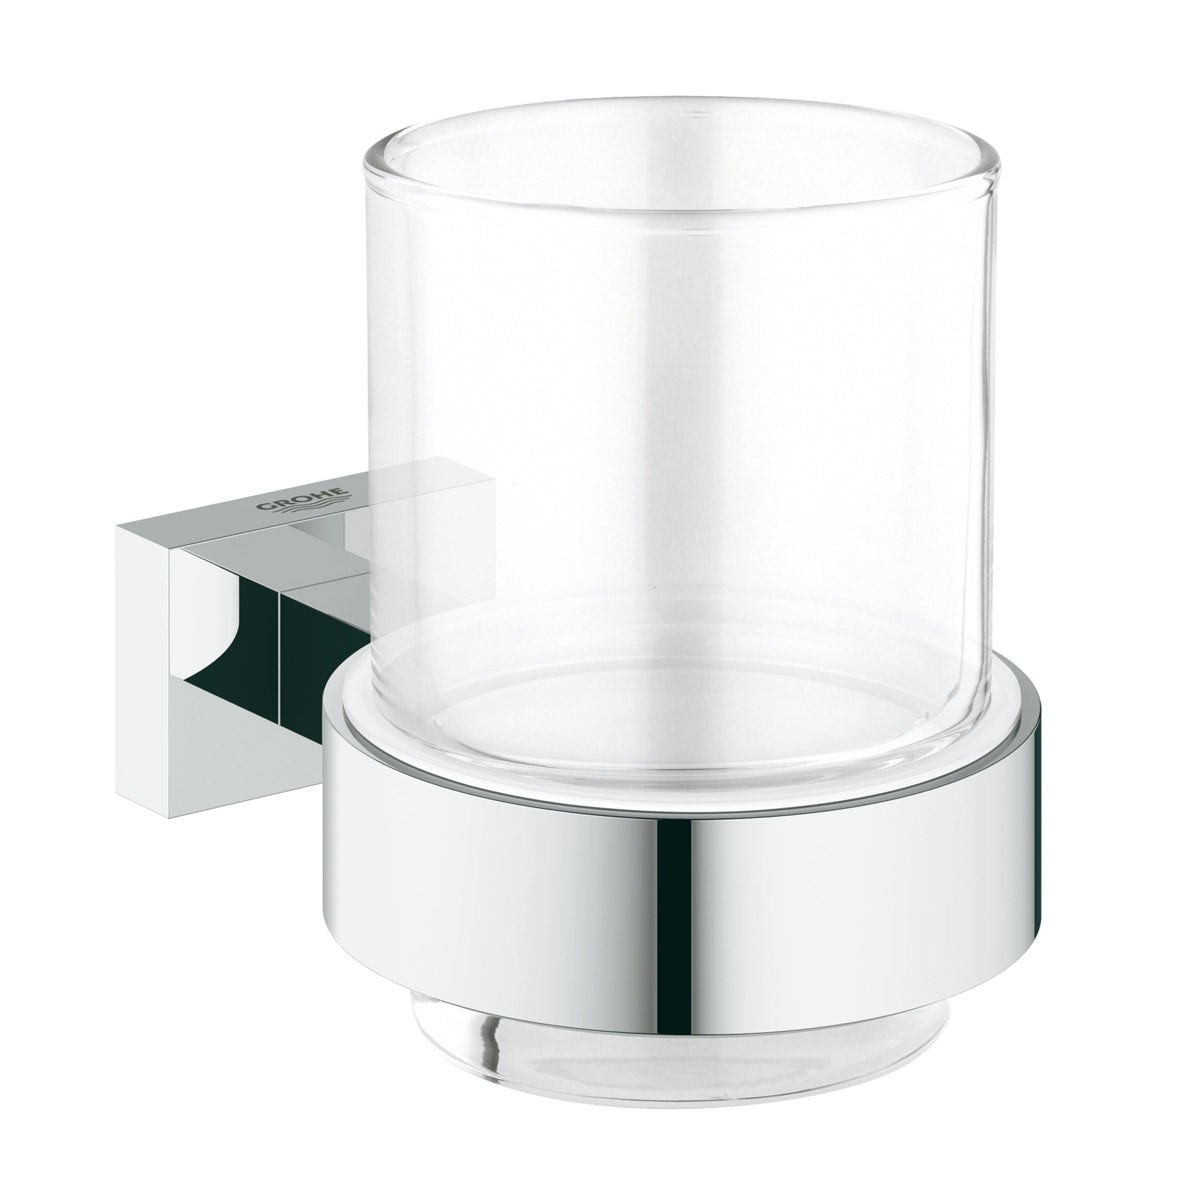 grohe essentials cube tumbler and holder. Black Bedroom Furniture Sets. Home Design Ideas